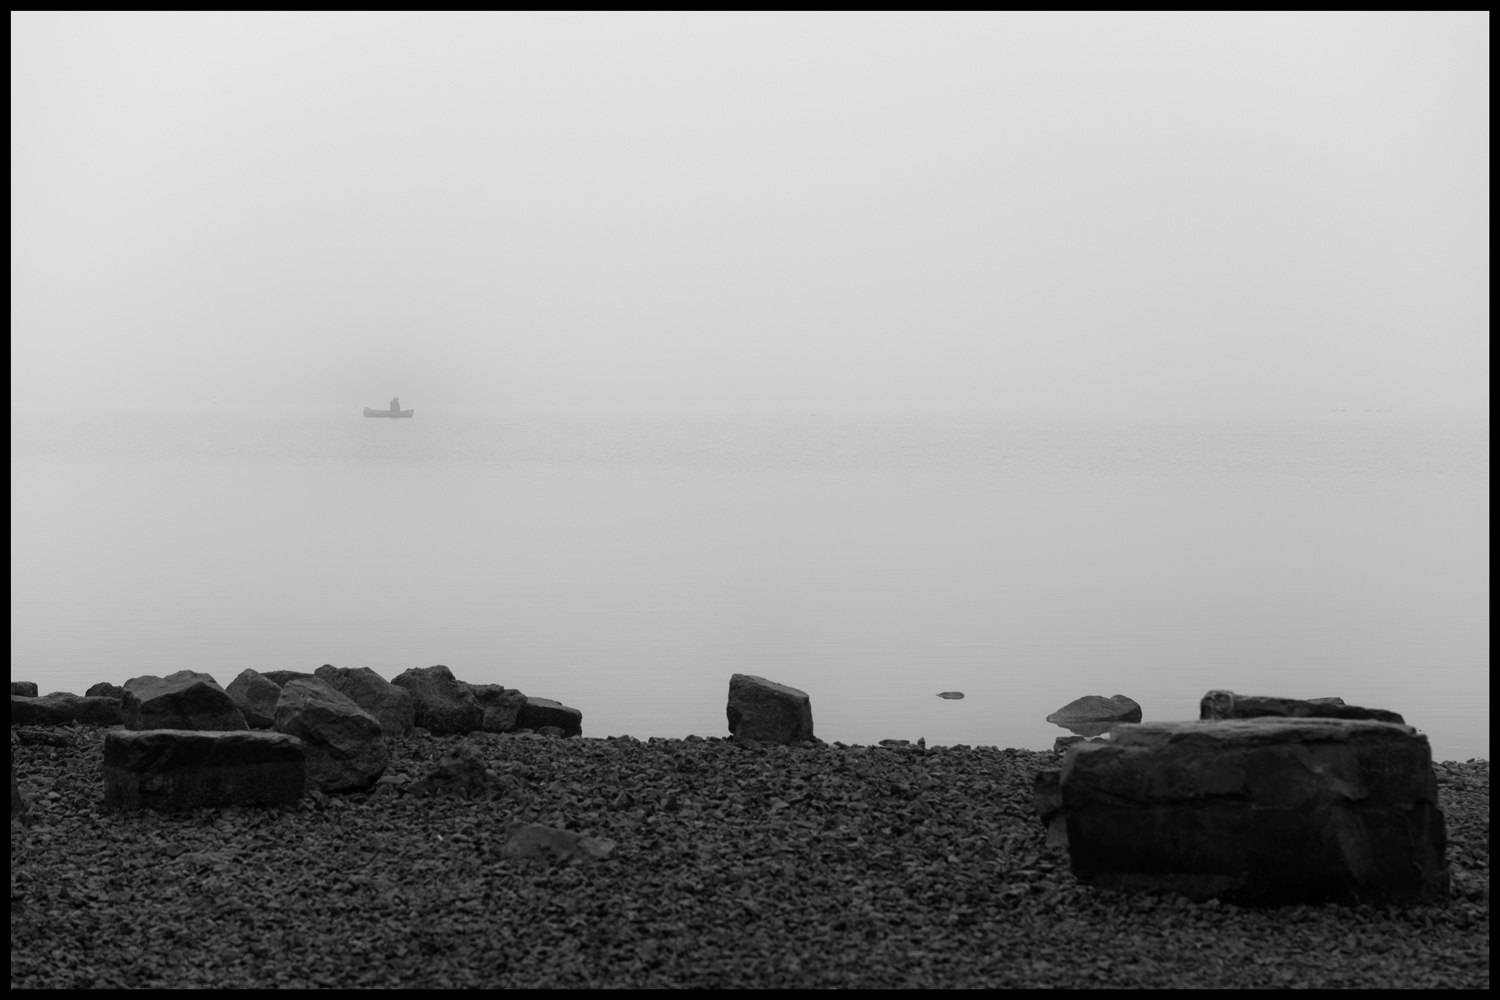 A person on a boat on the lake is just visible in the fog. In the foreground are rocks and shale